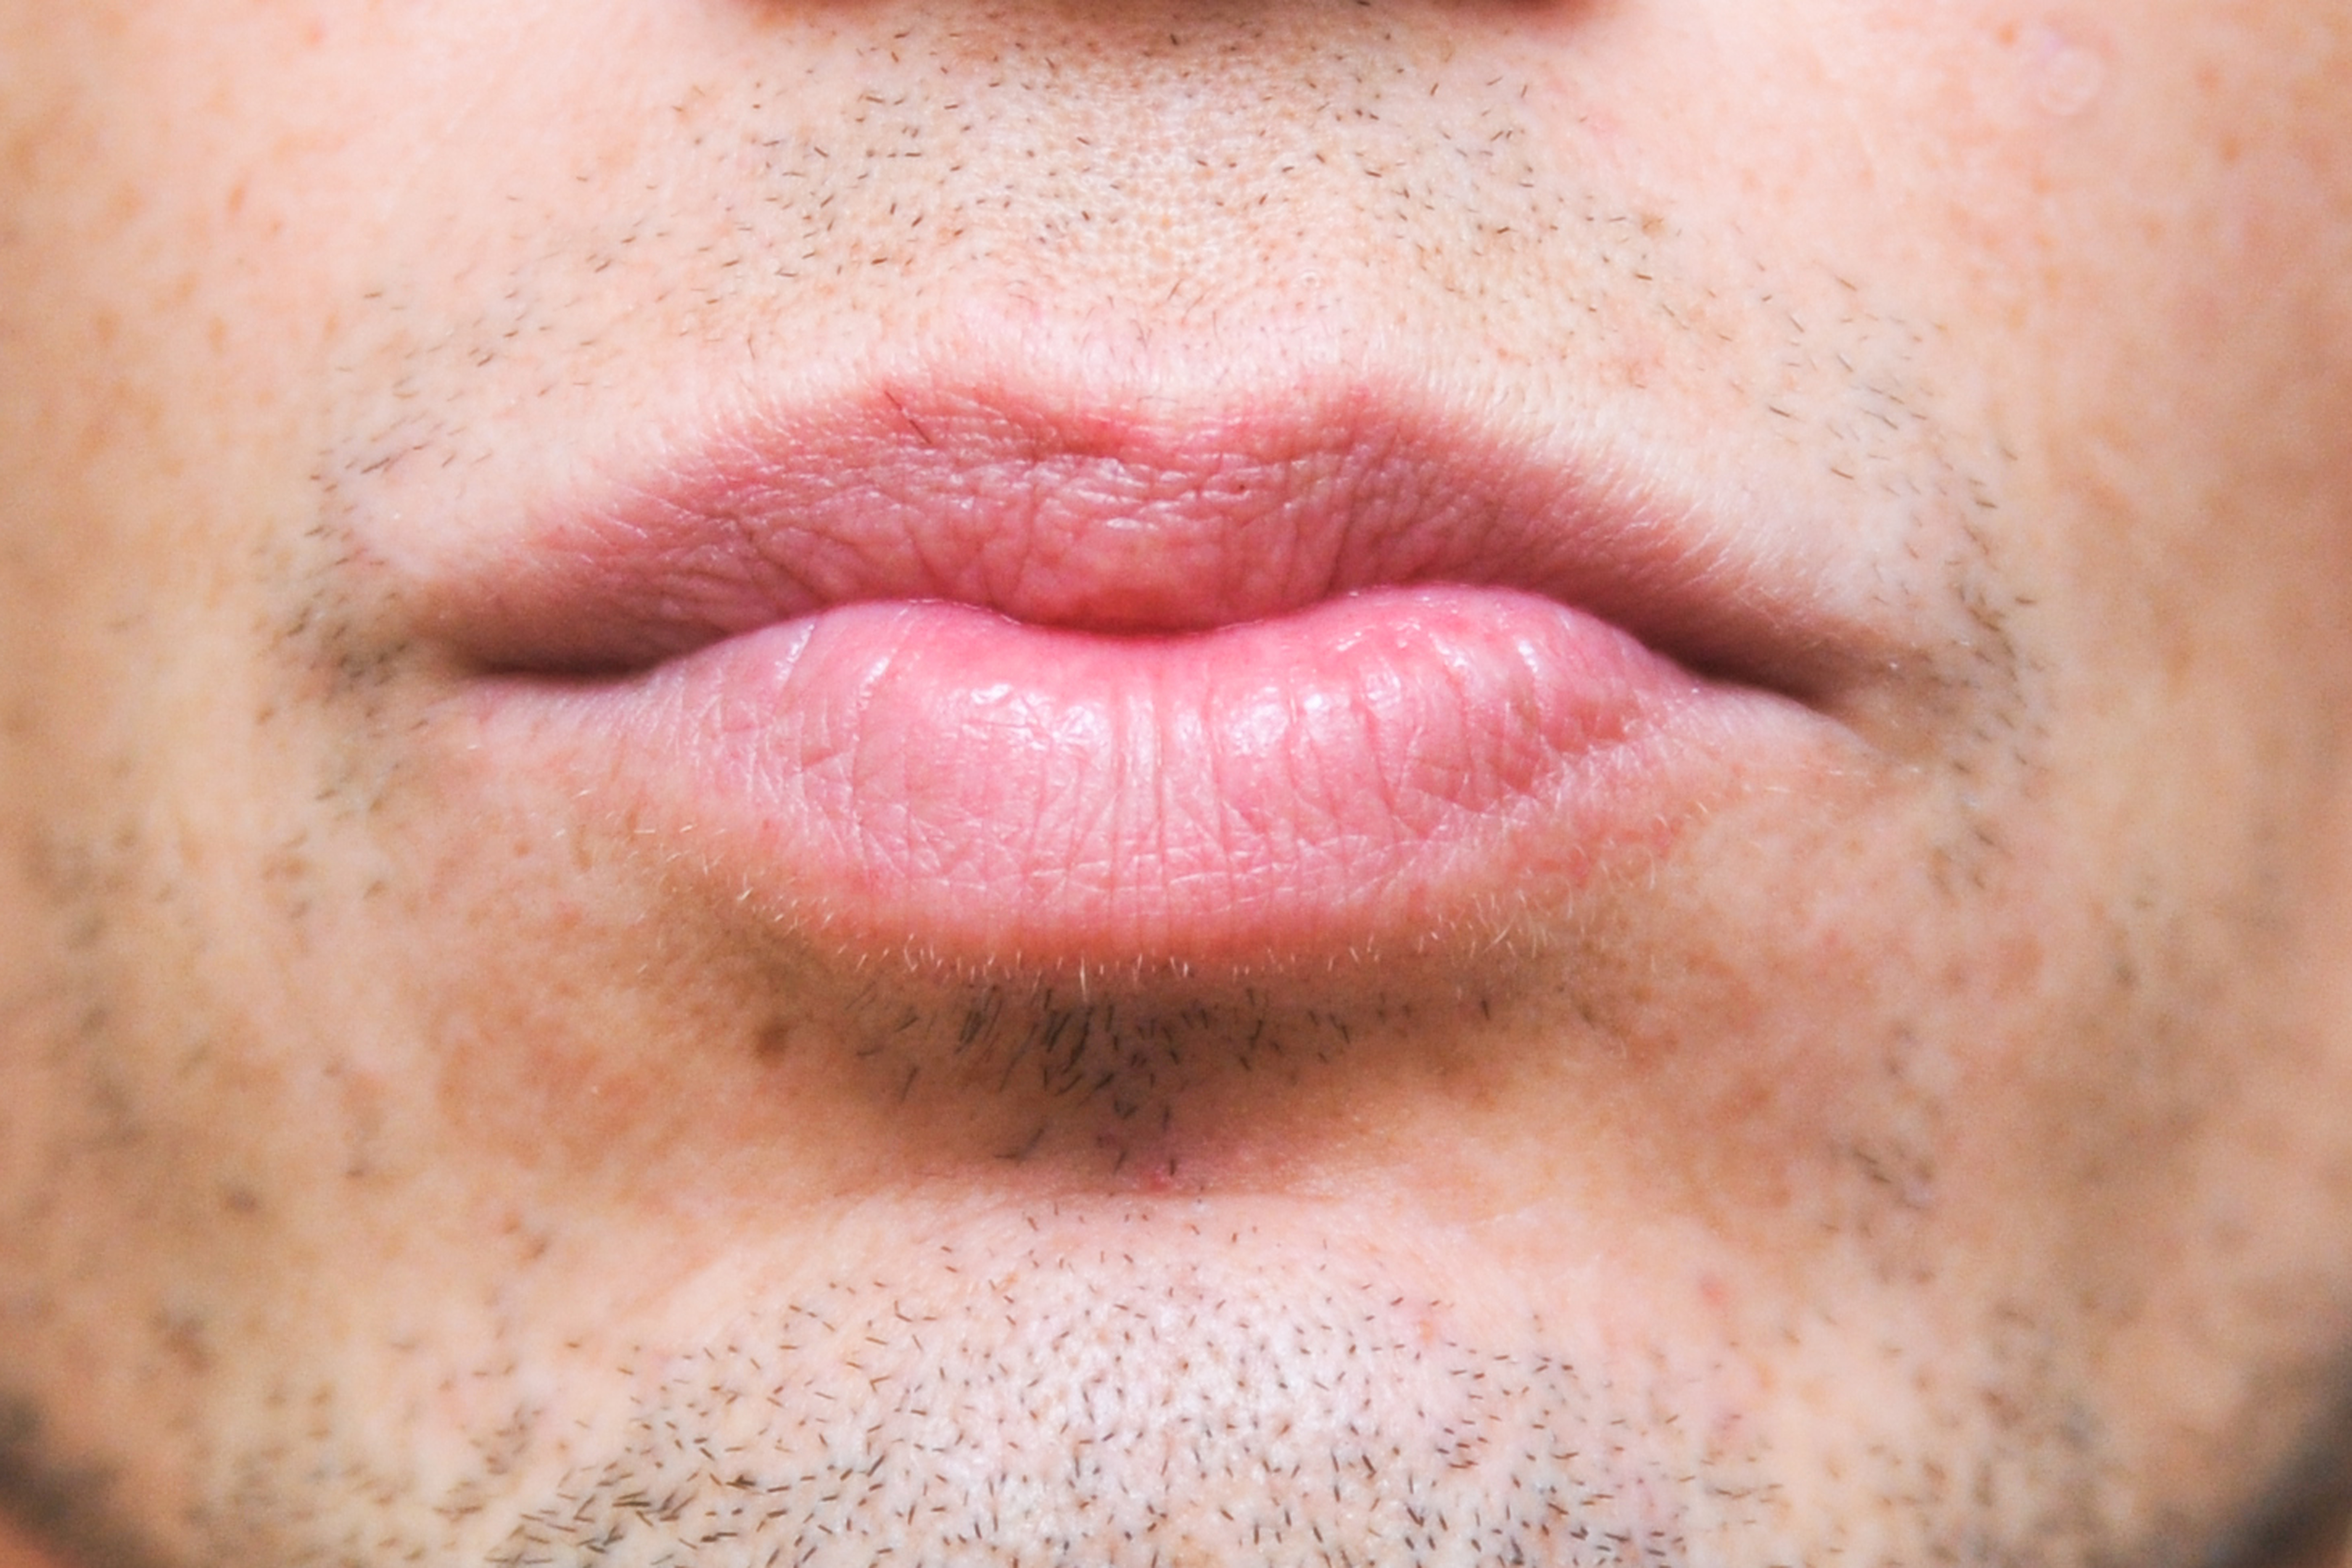 How to Remove Nicotine Stains From Lips | LIVESTRONG.COM